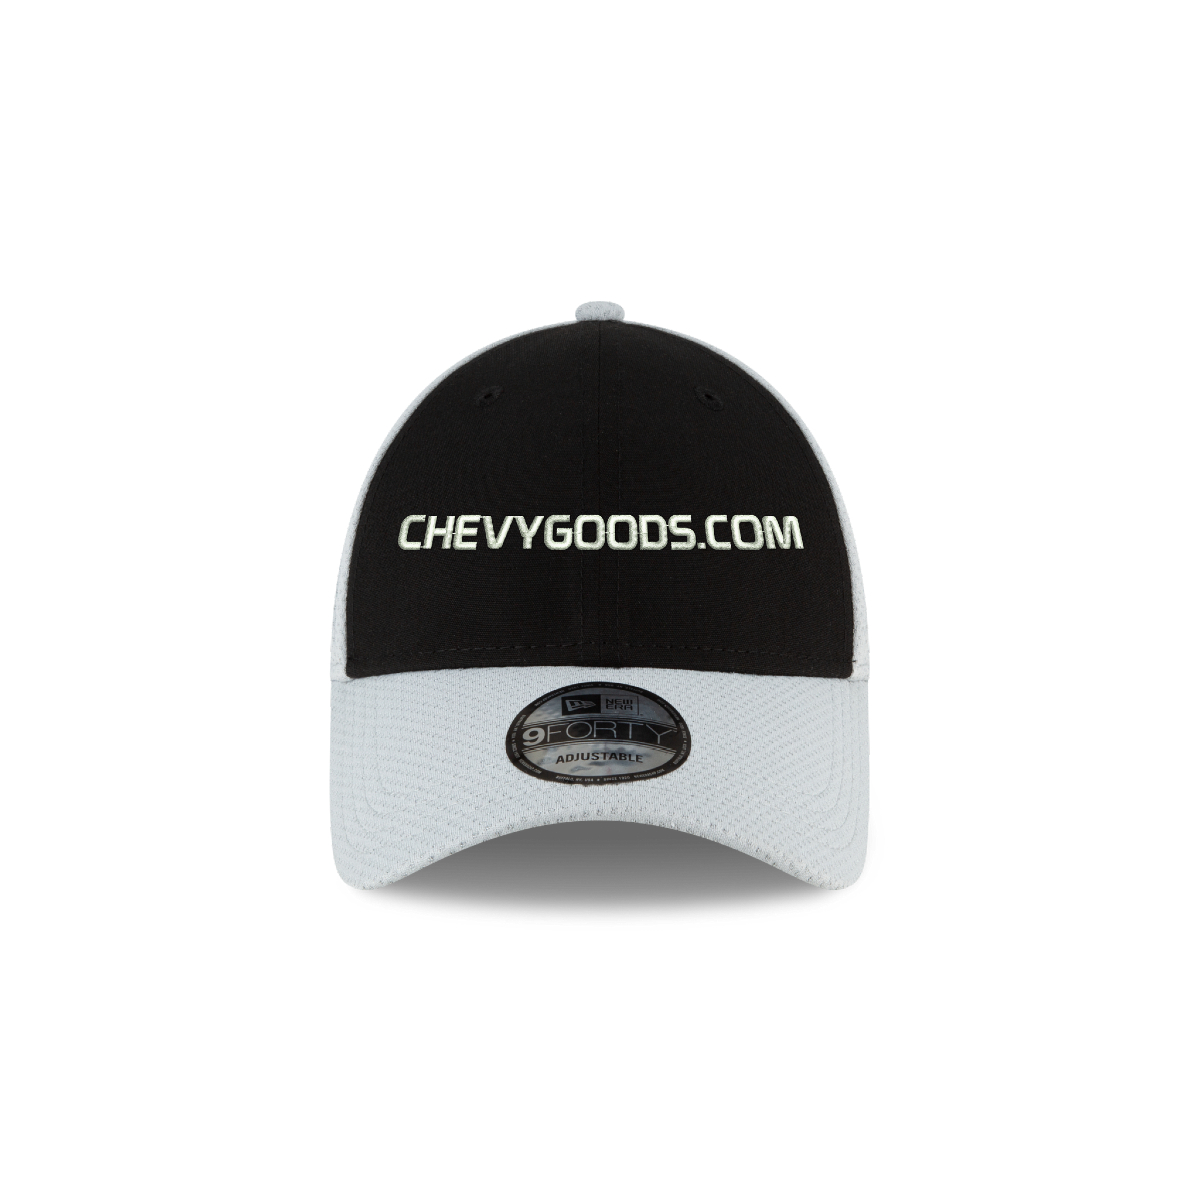 BOWMAN 2020 PLAYOFFS CHEVY GOODS NASCAR CUP HAT